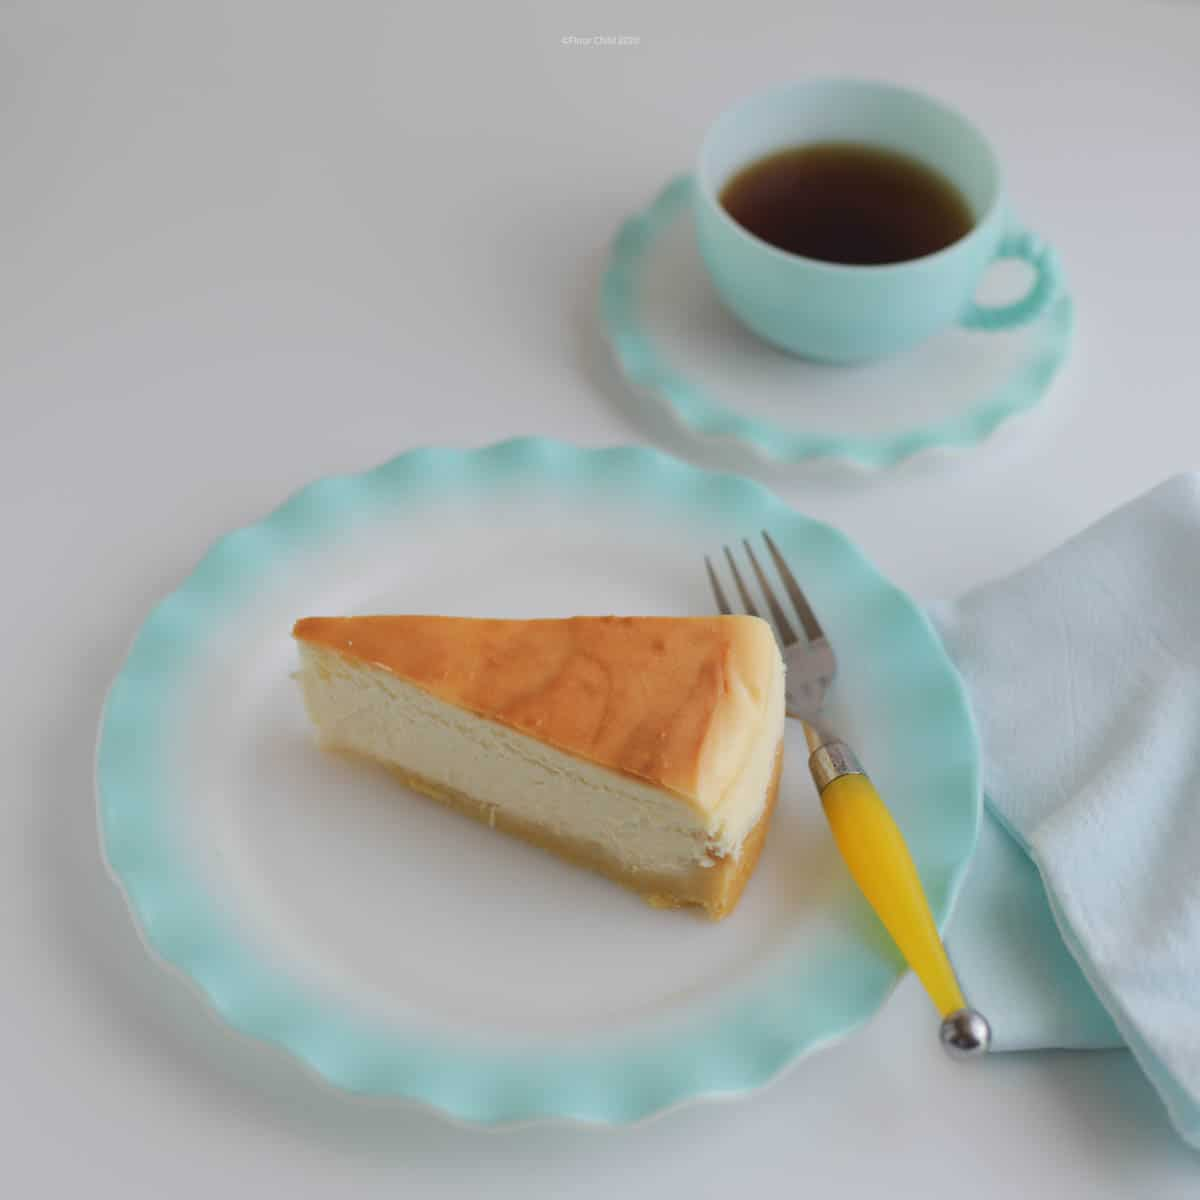 Slice of New York Style Cheesecake with Shortbread Crust